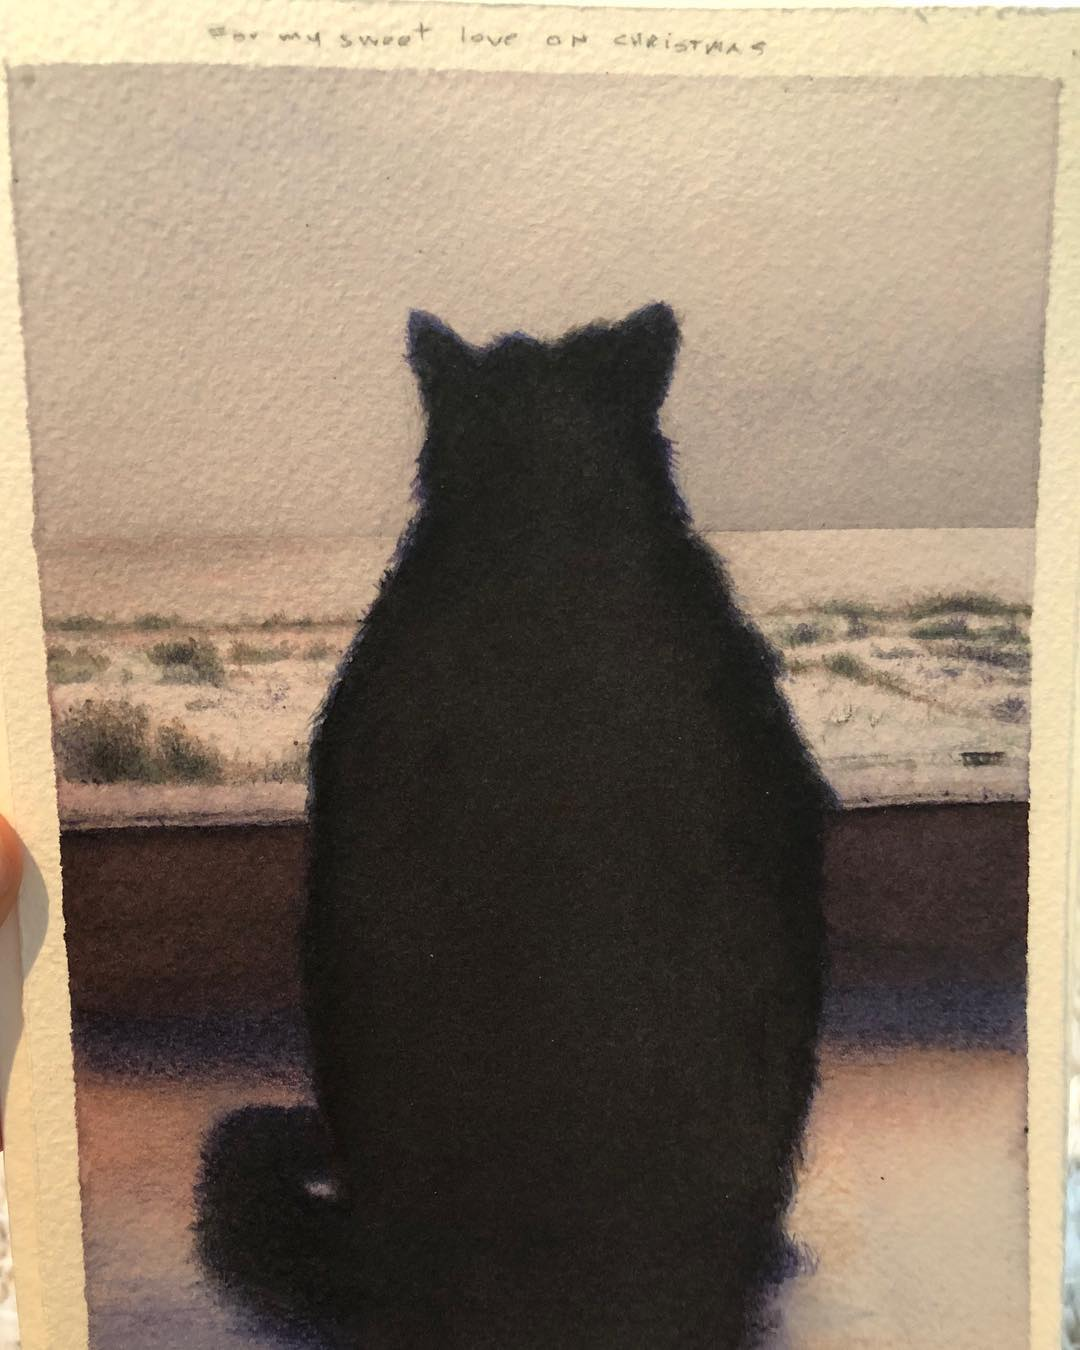 Howard Stern Cat Painting : howard, stern, painting, Second,, Thought, Howard's, Getting, Better..., Howardstern